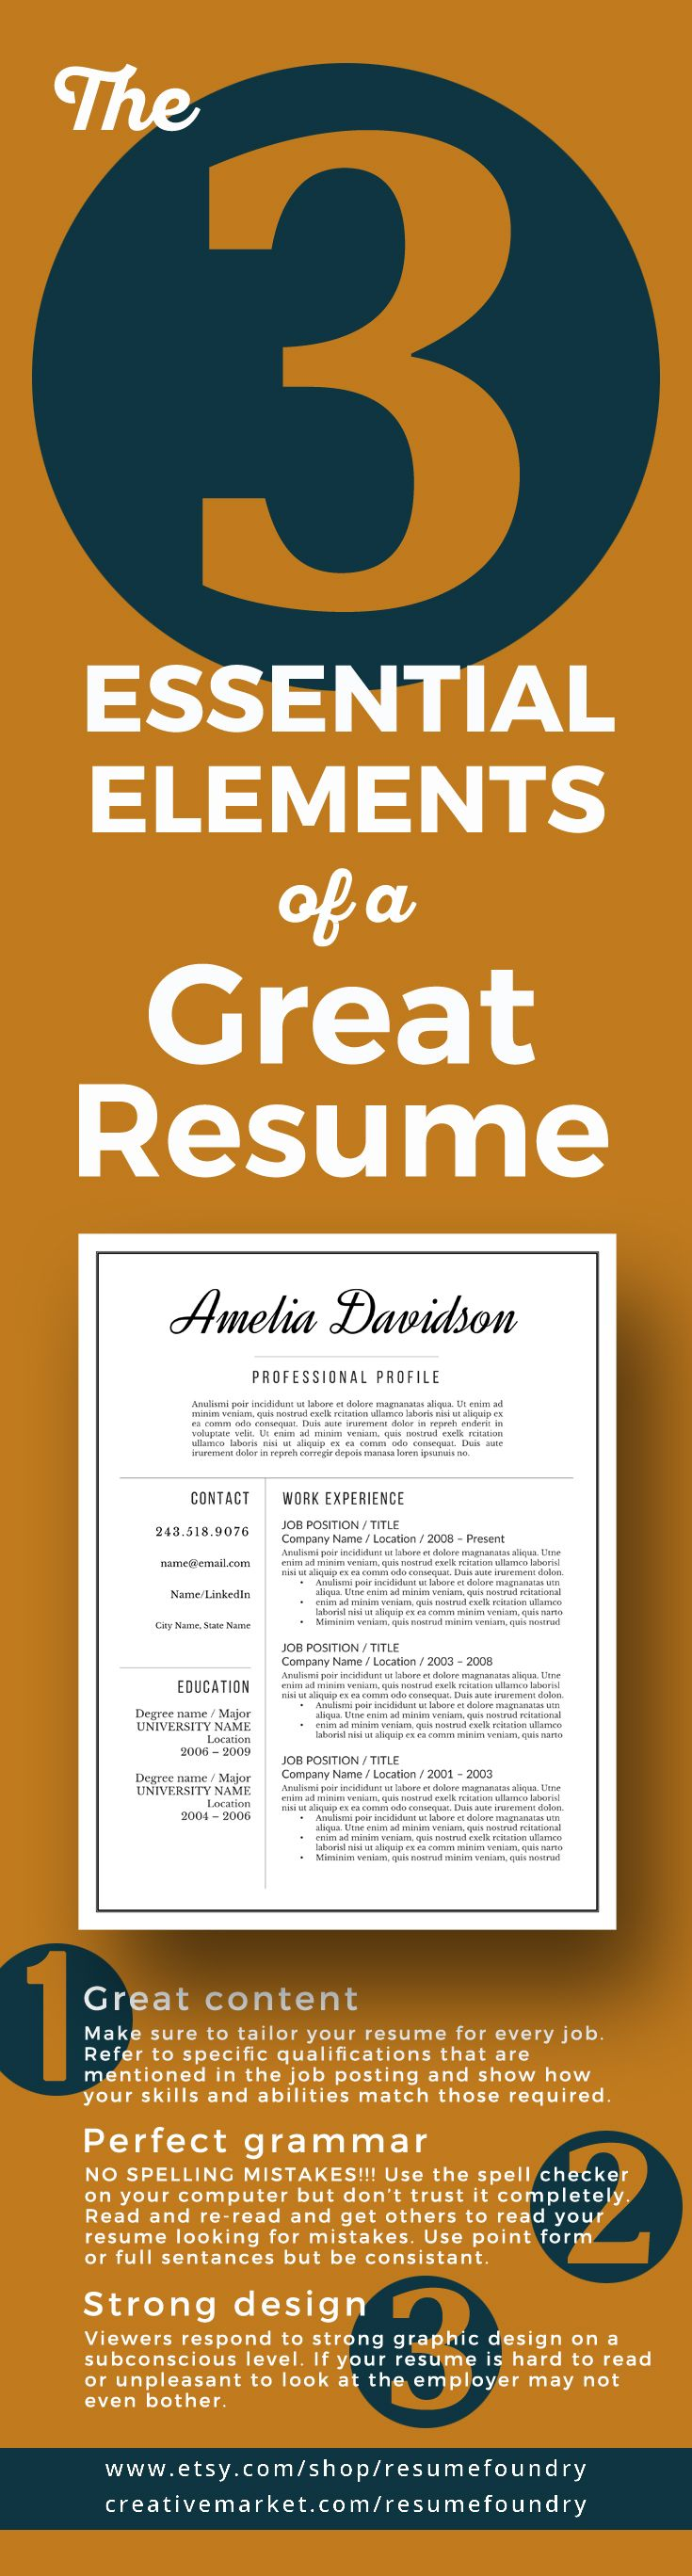 excellent resume formats%0A cover letter for flight attendant job